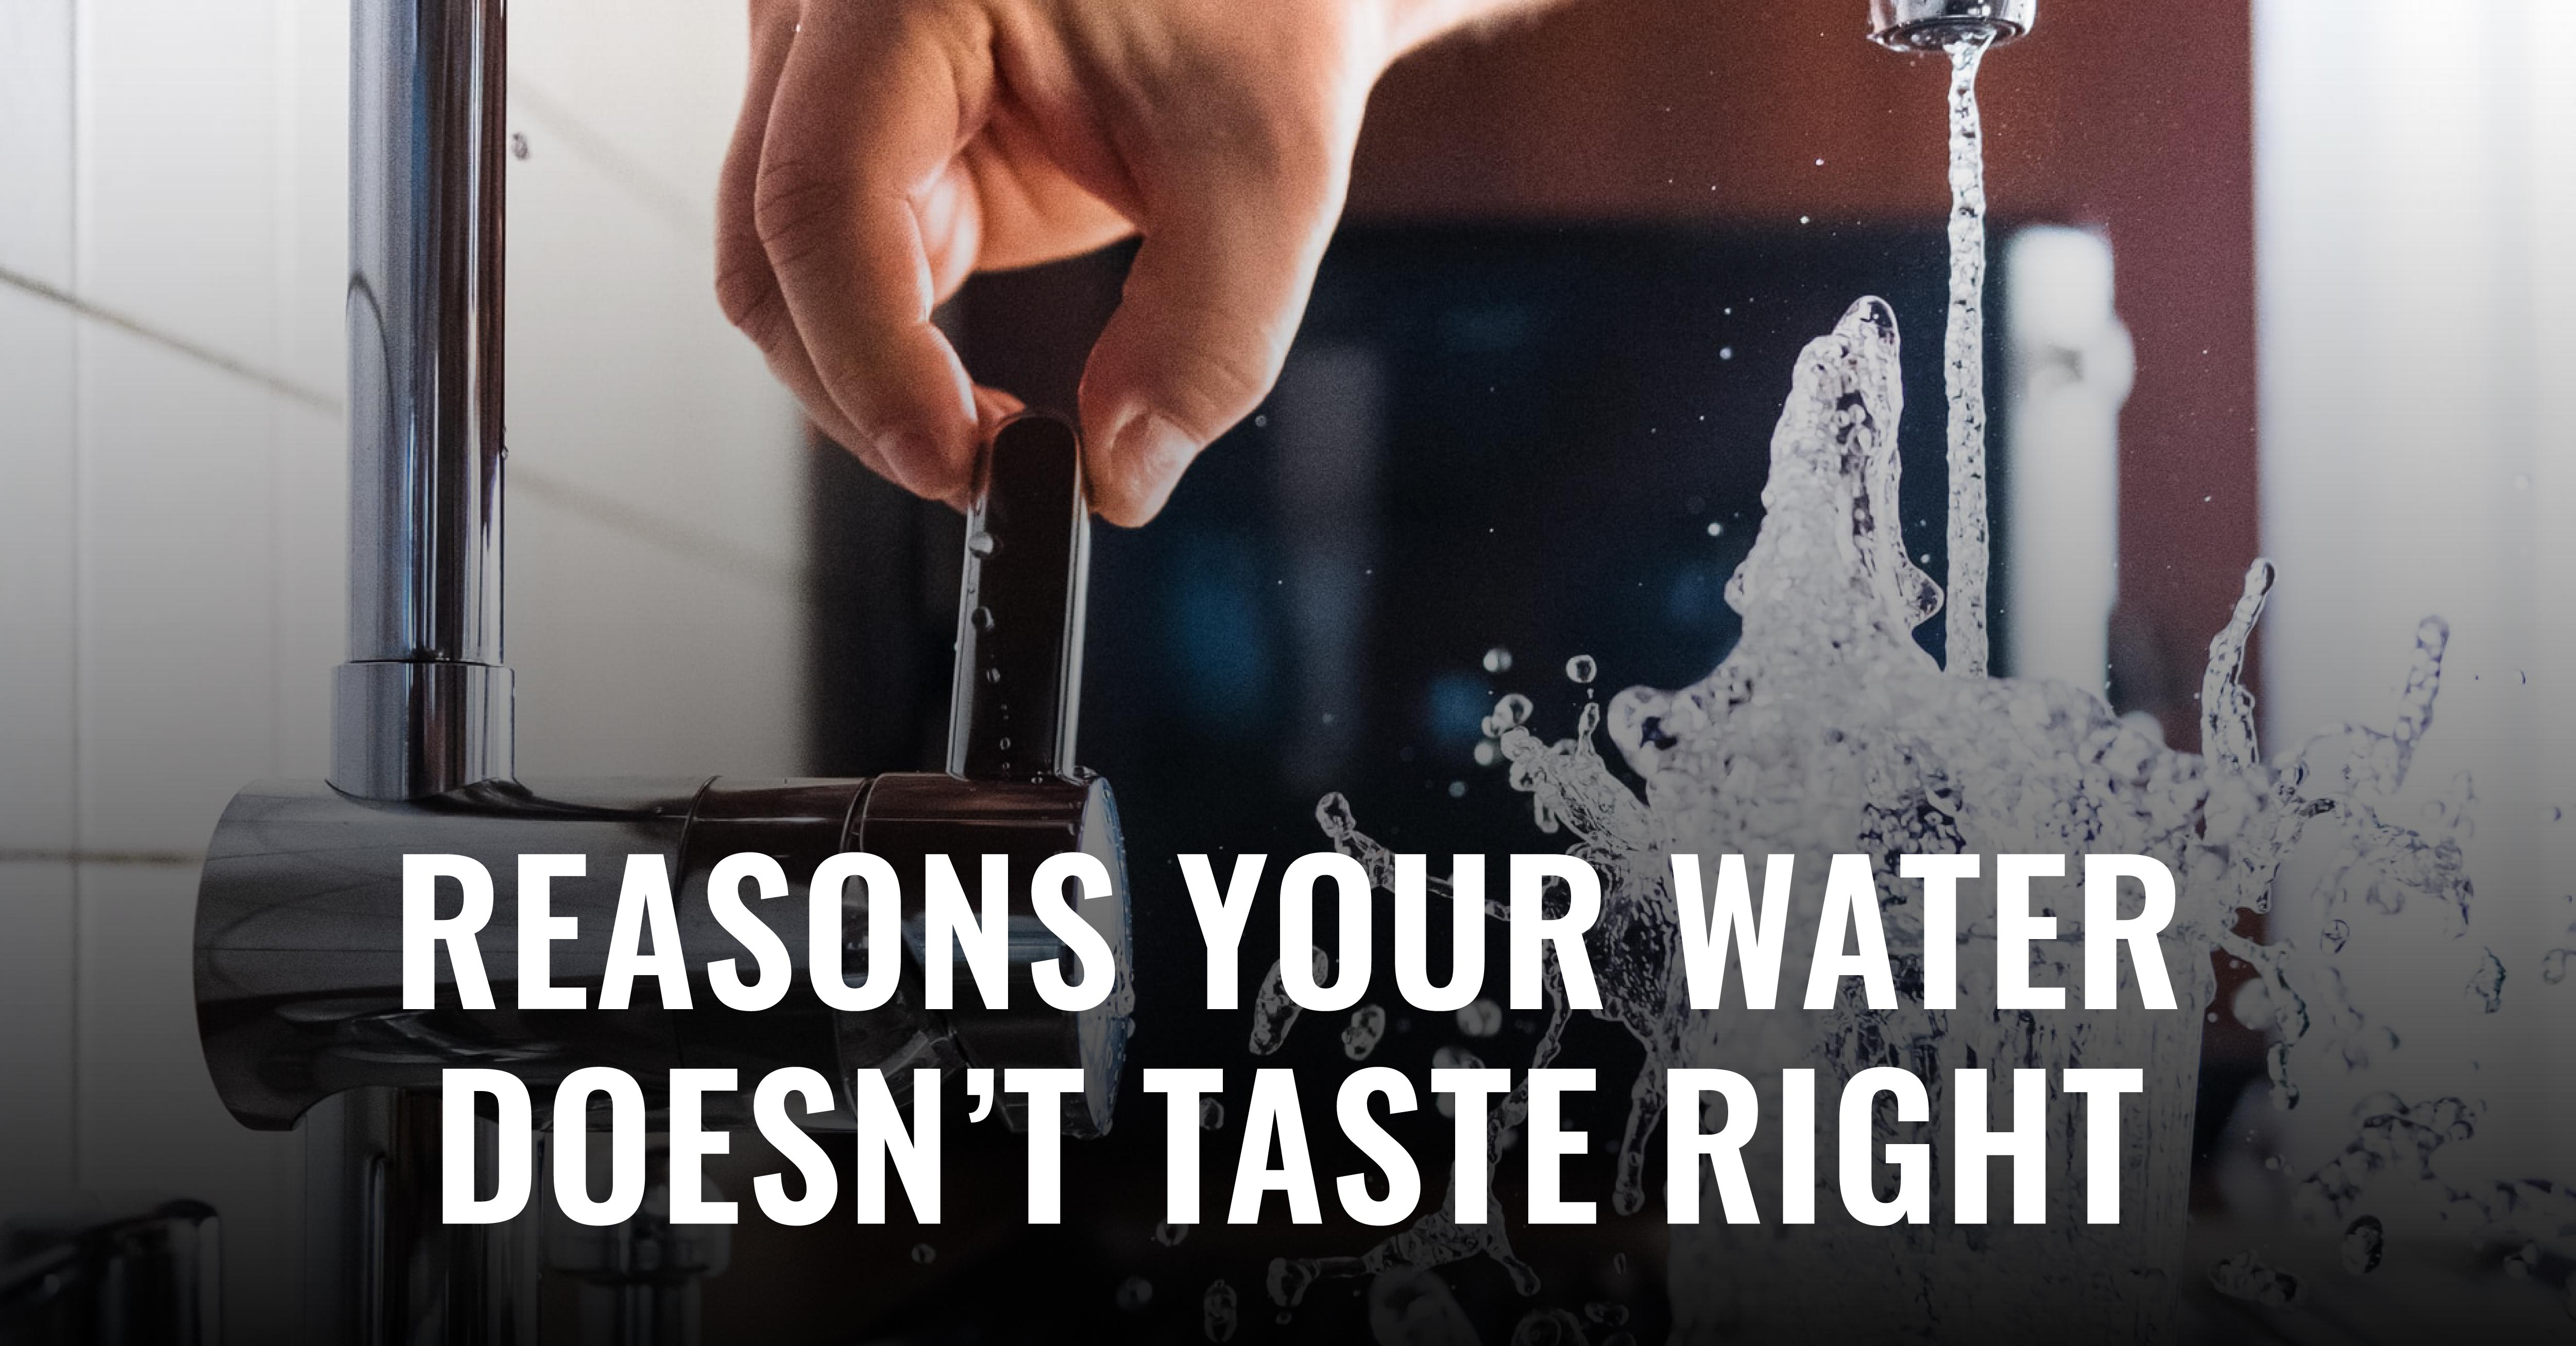 Does your water taste a bit...funky? There may be a deeper issue. Read about some of the common causes.